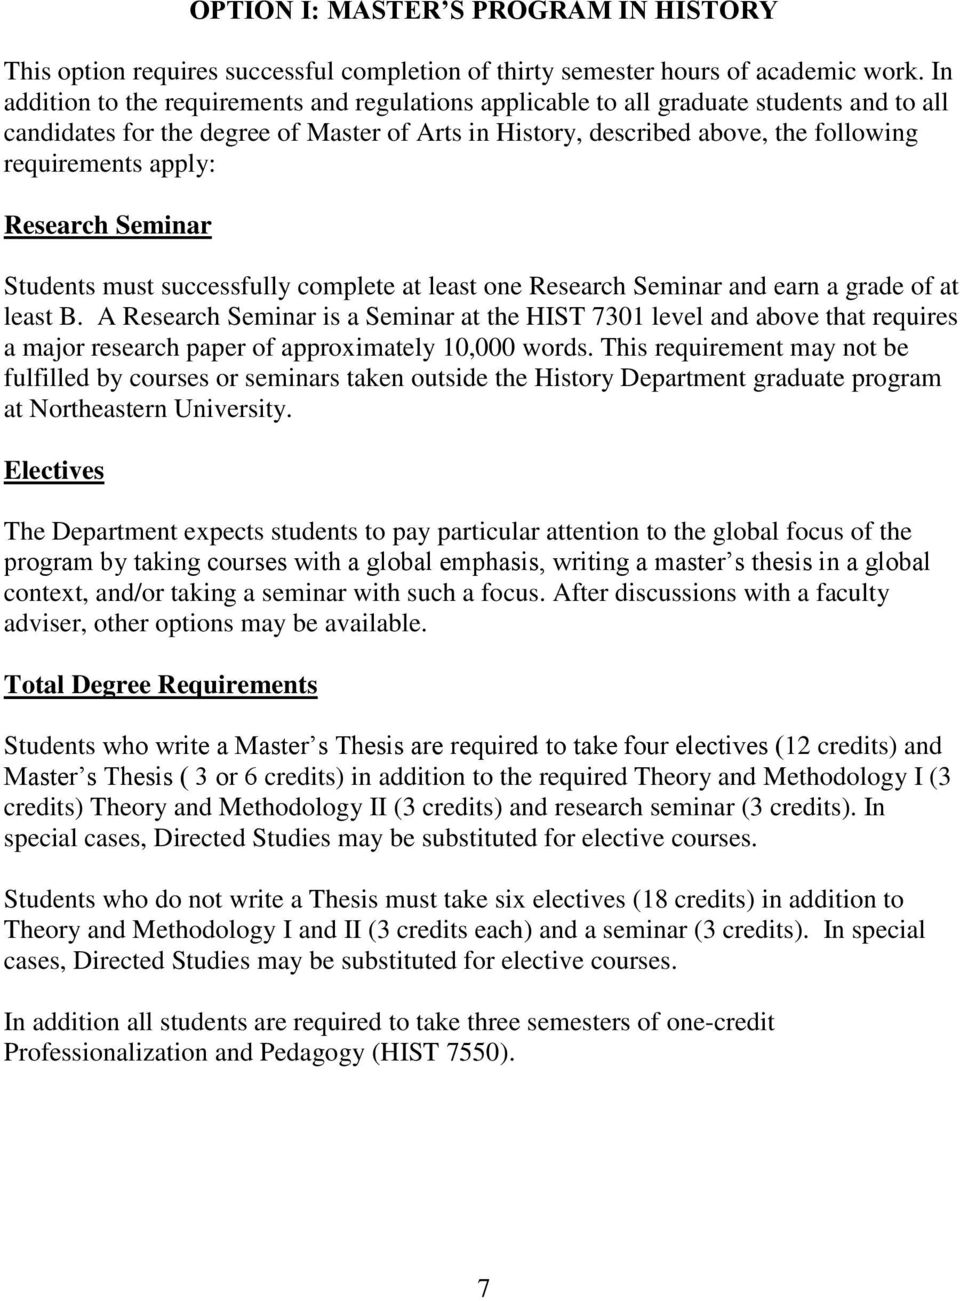 apply: Research Seminar Students must successfully complete at least one Research Seminar and earn a grade of at least B.